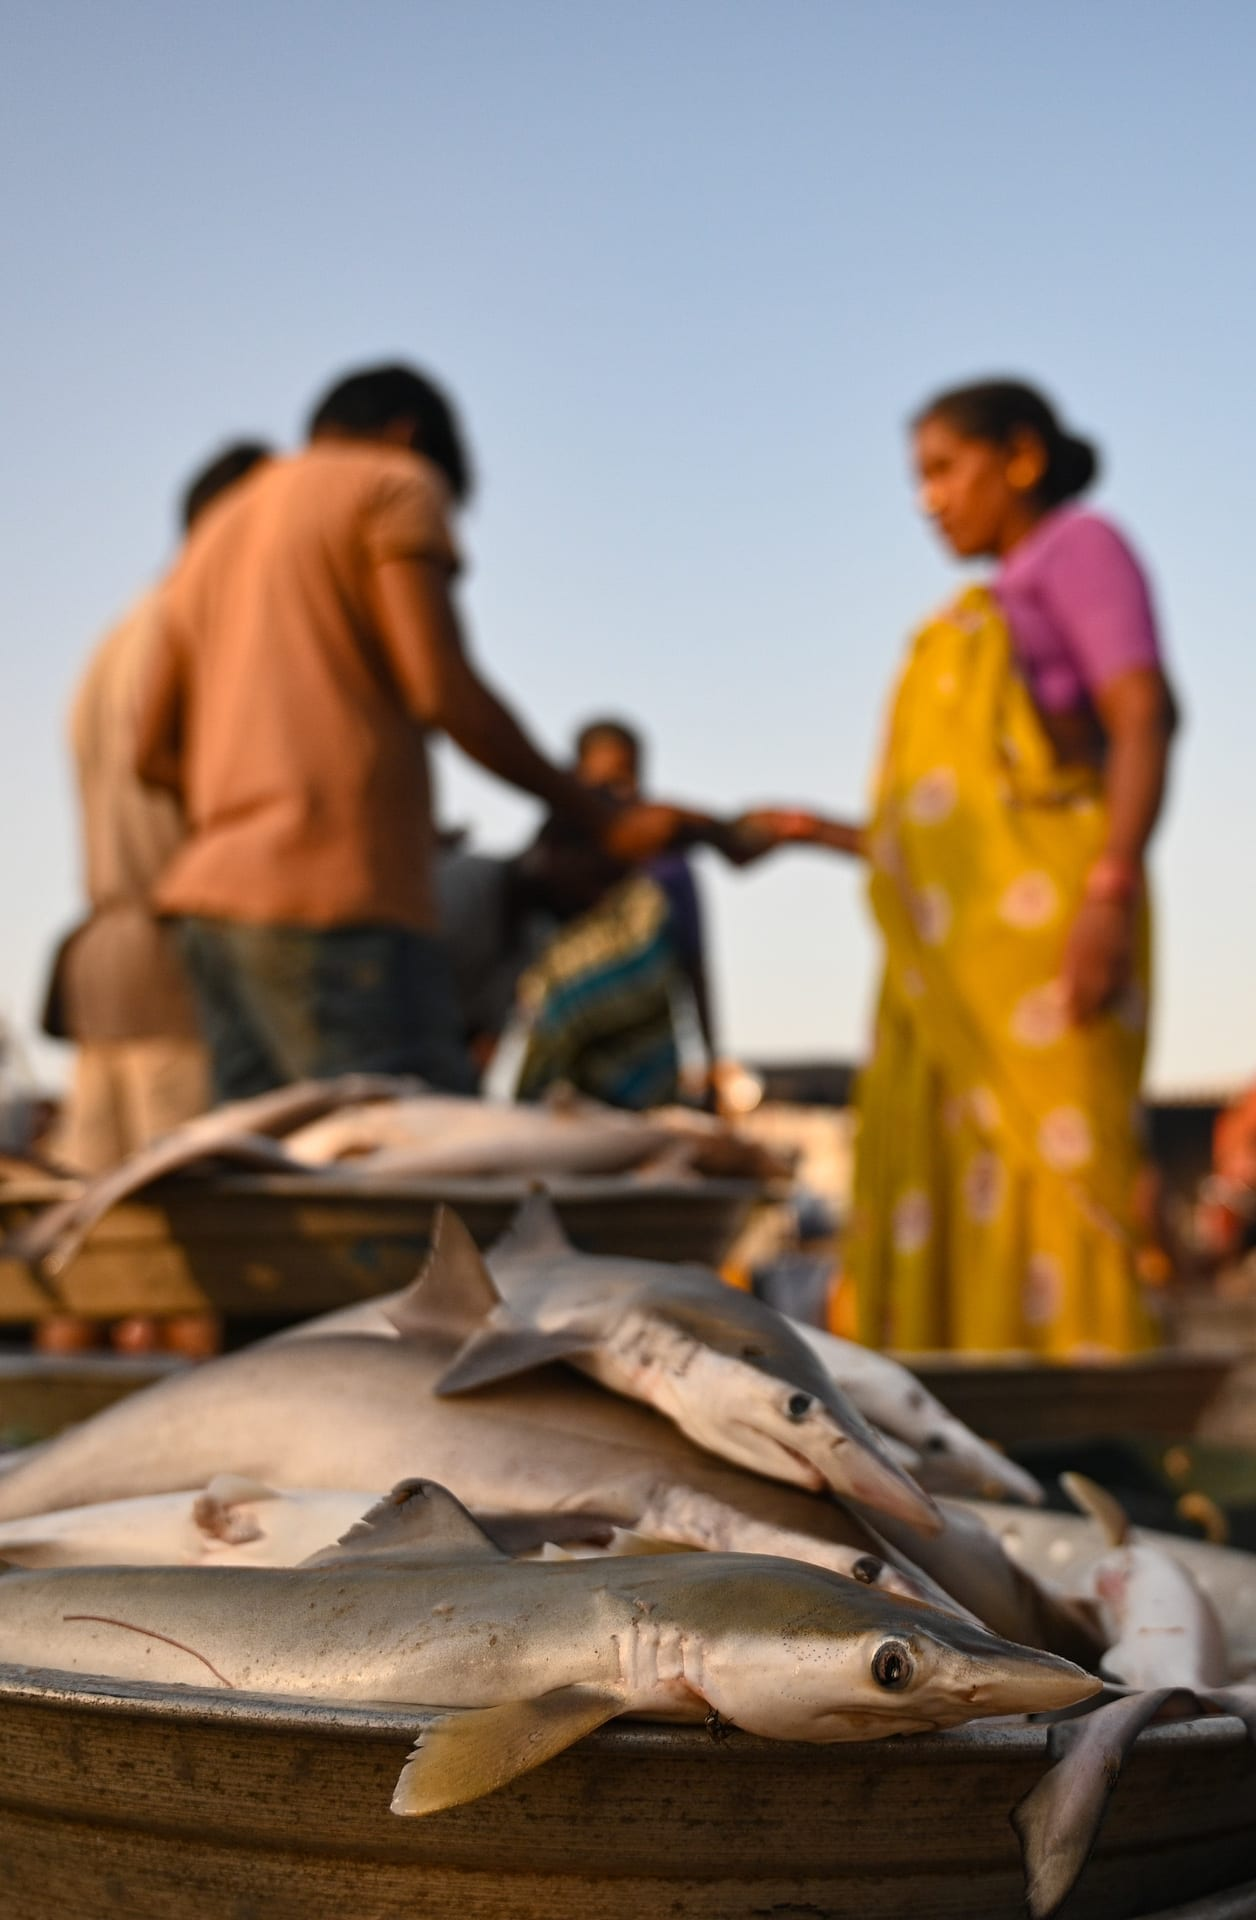 Shark pups are regularly sold in markets, not just in Goa but across coastal states in India. Photo: Srikanth Mannepuri